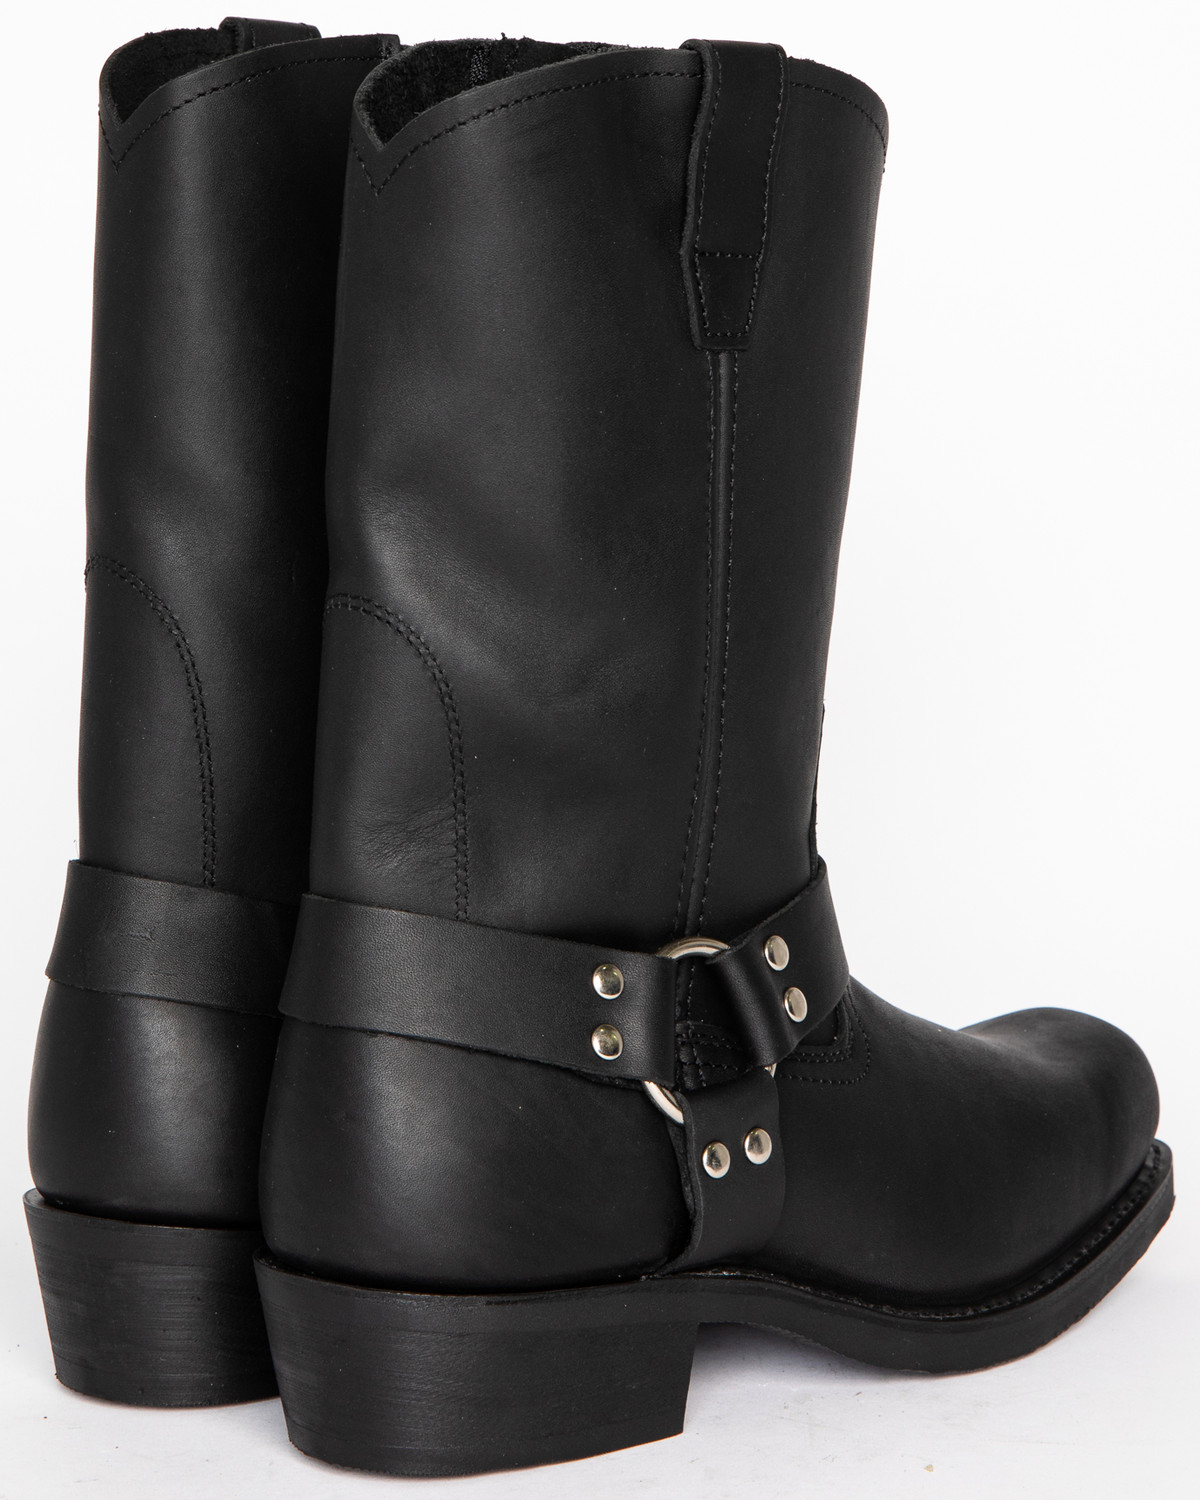 Cody James Men S Zipper Harness Motorcycle Boots Square